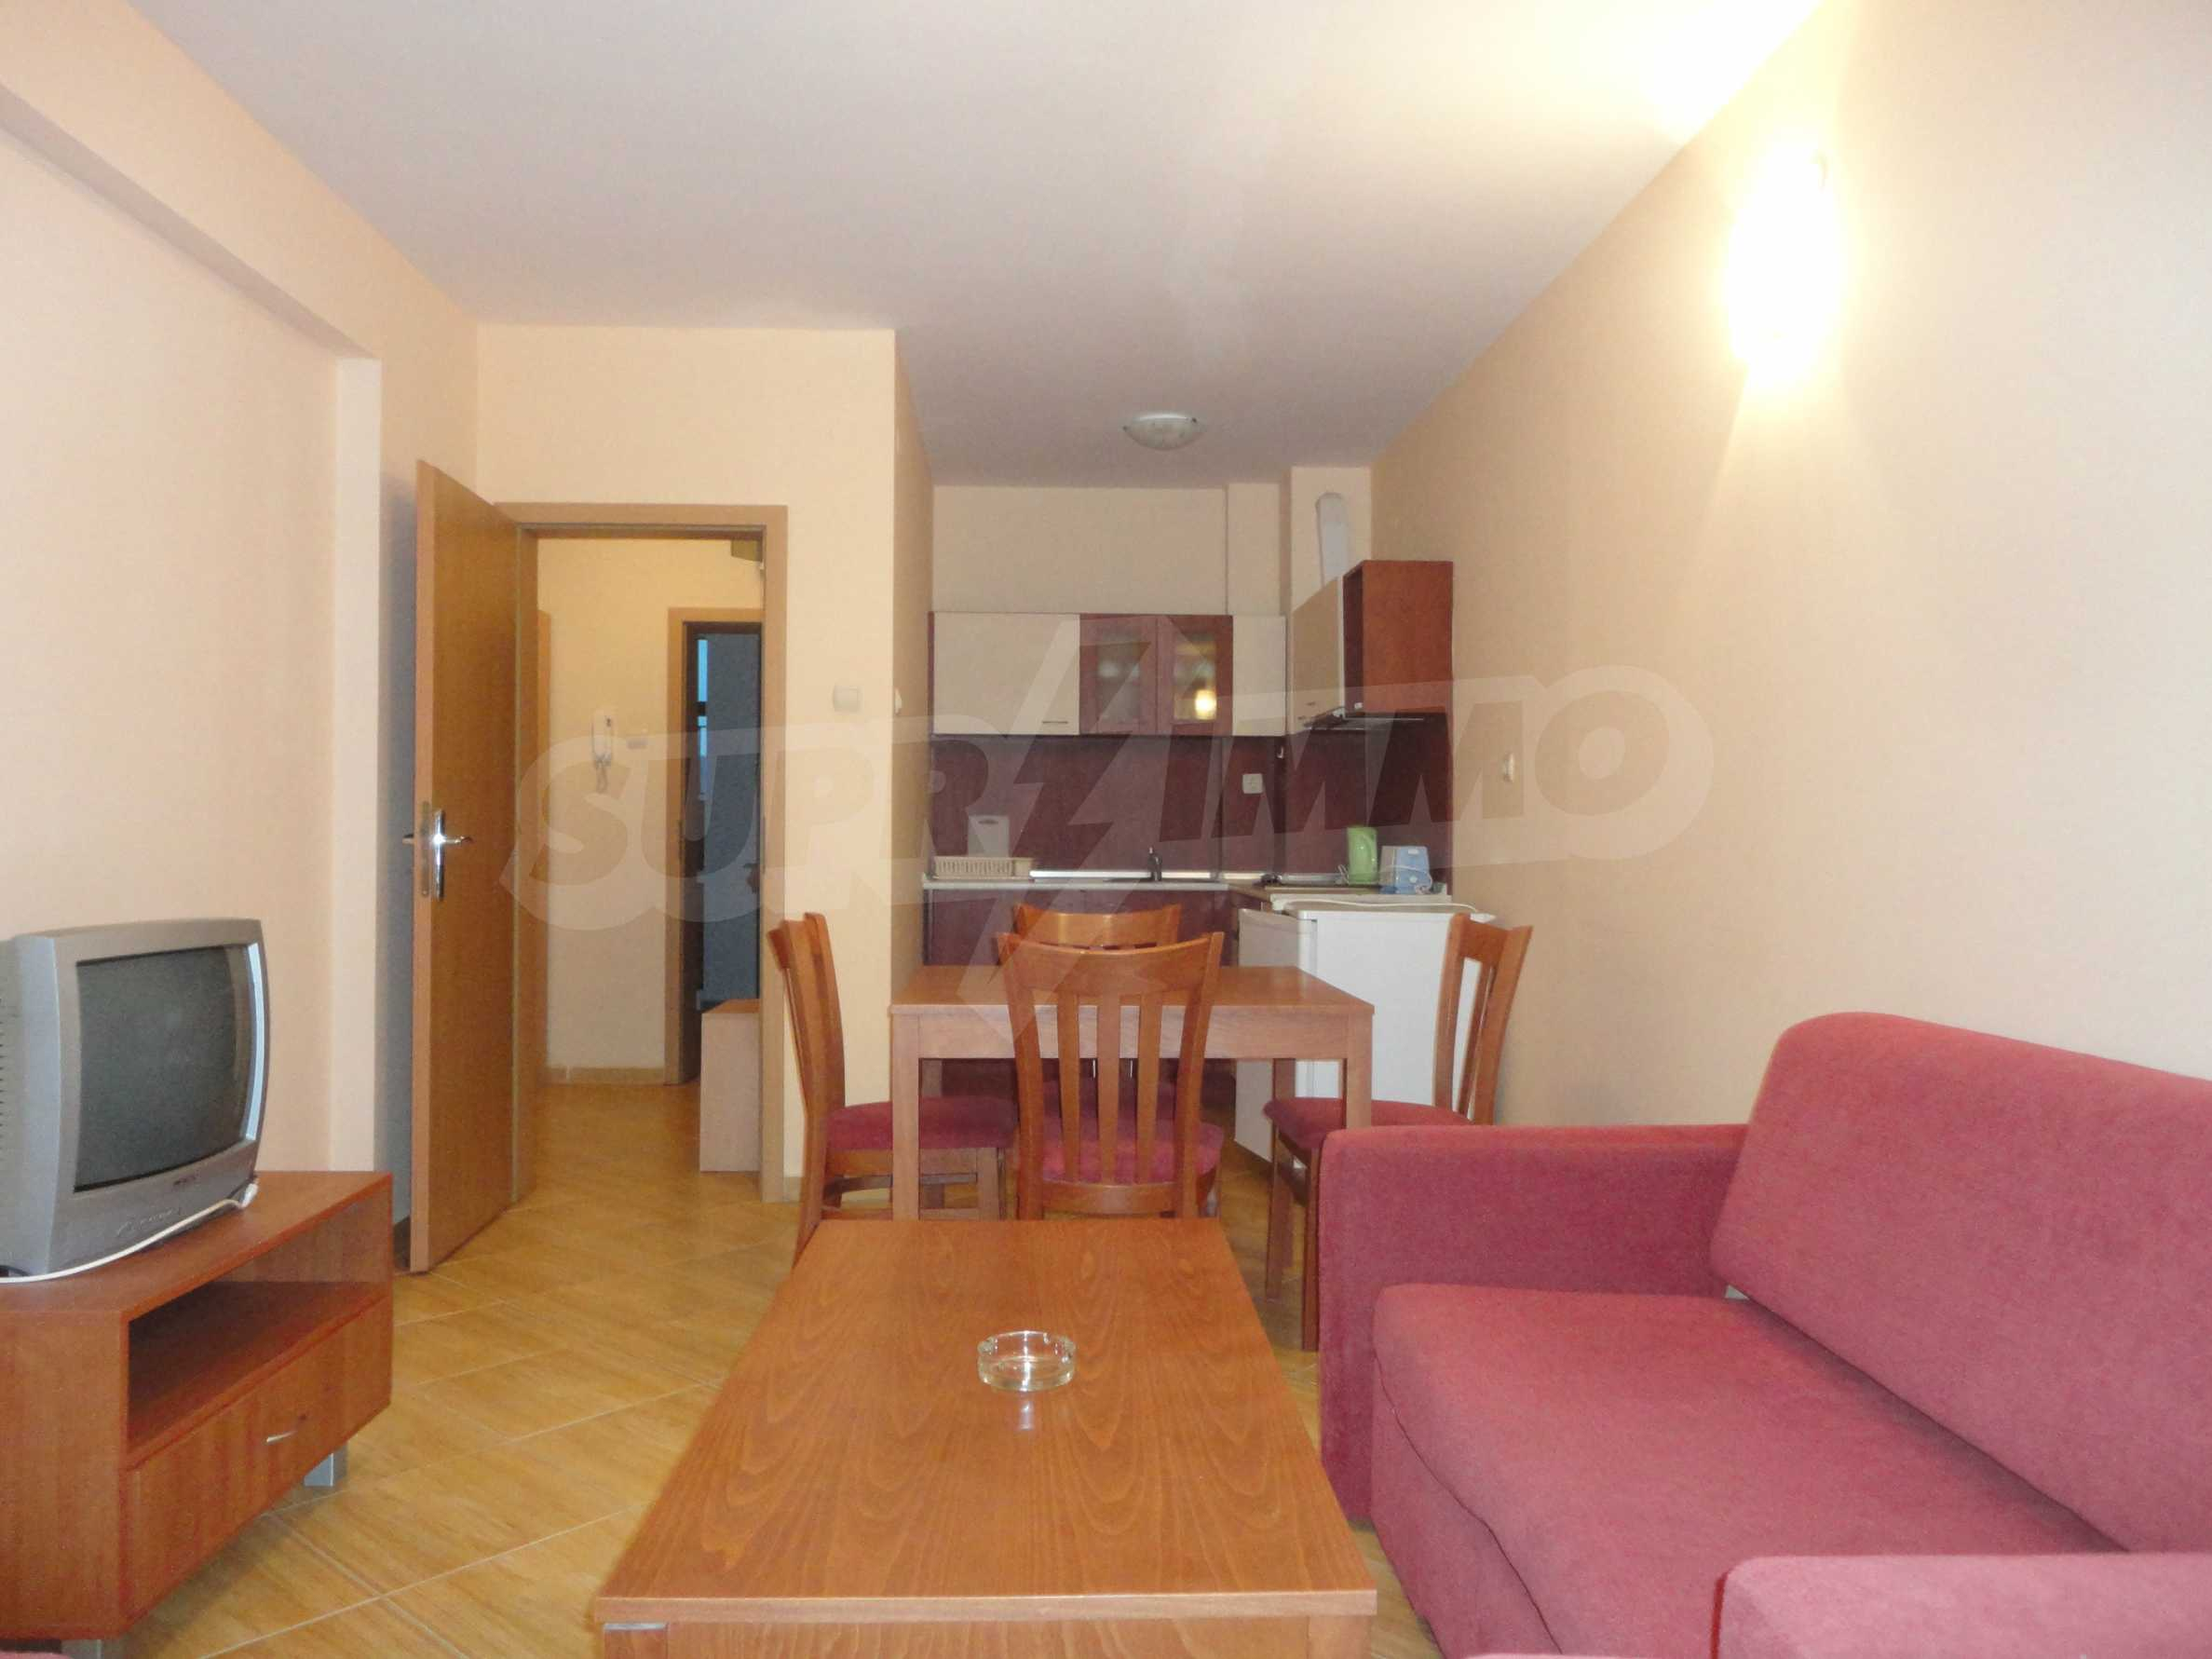 One-bedroom apartment in Golden Dreams complex in Sunny beach